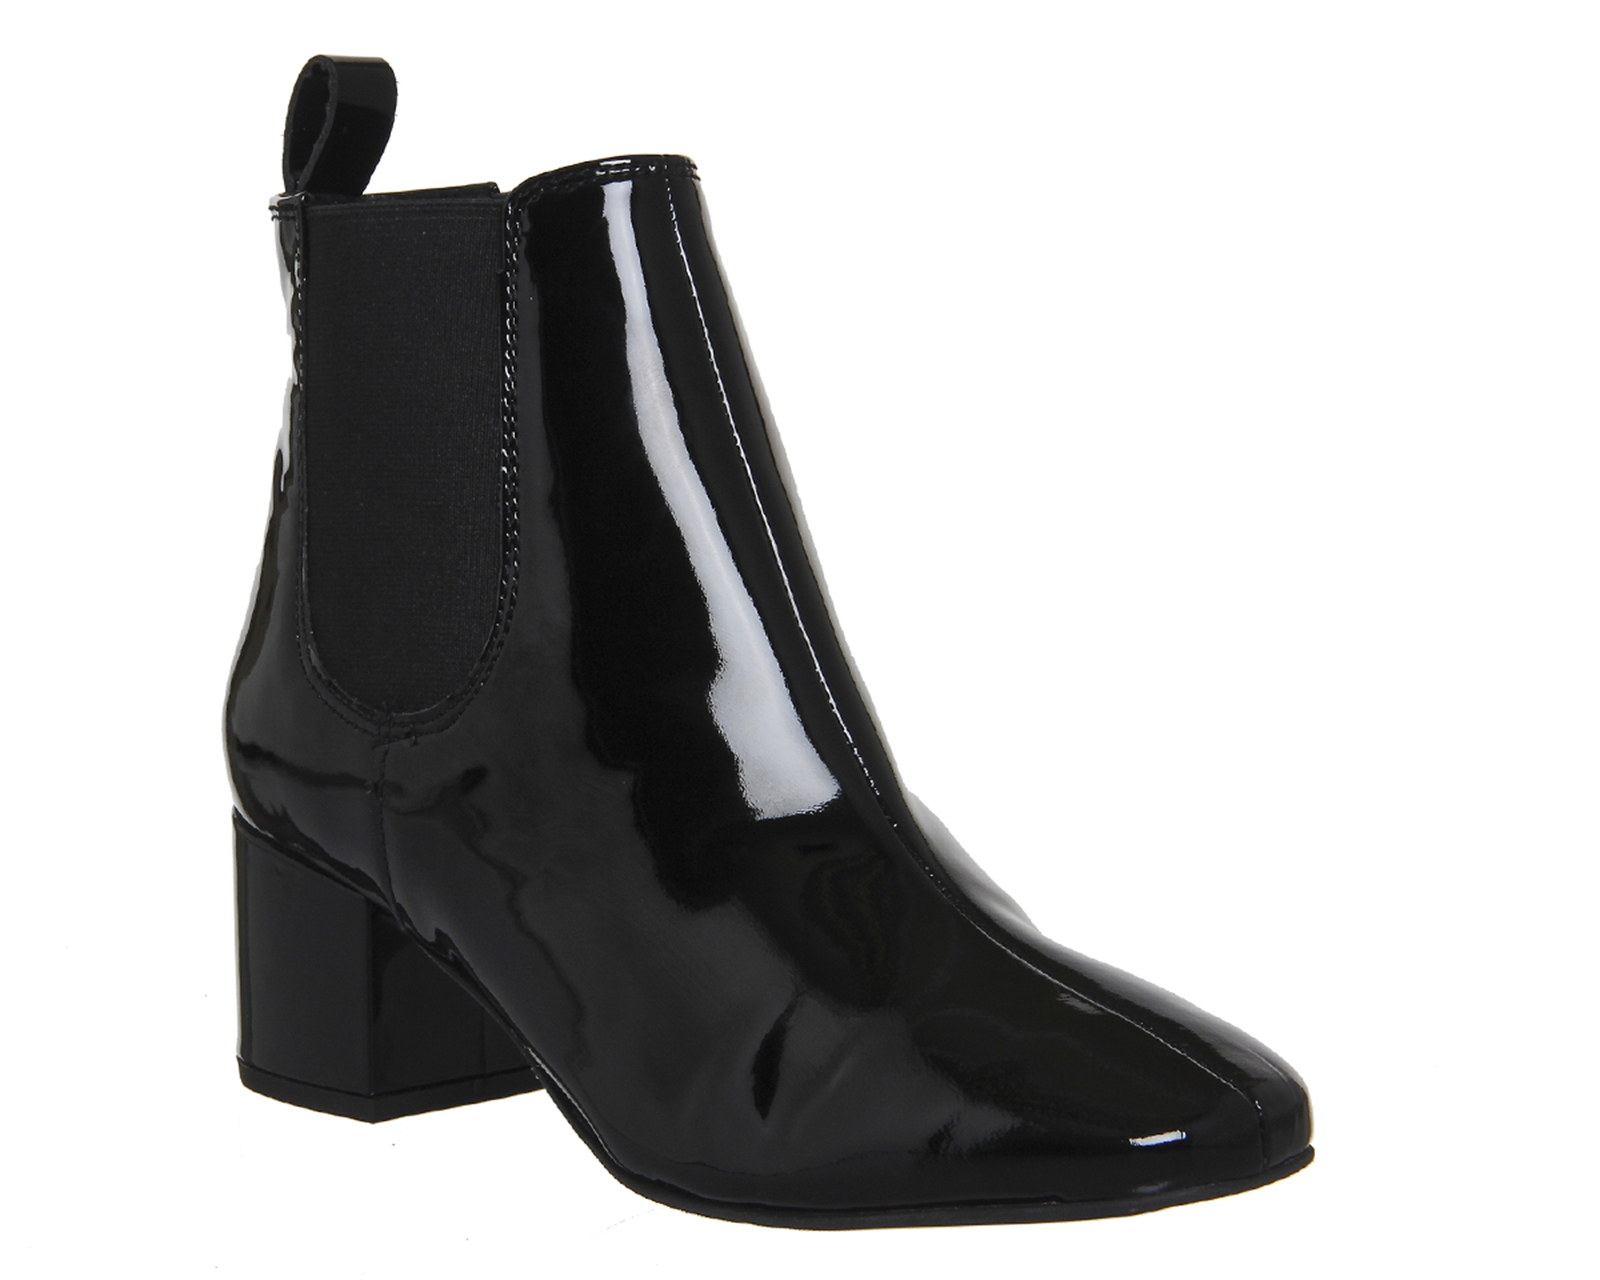 Brilliant Isabel Marant Patent Chelsea Boots In Black  Lyst